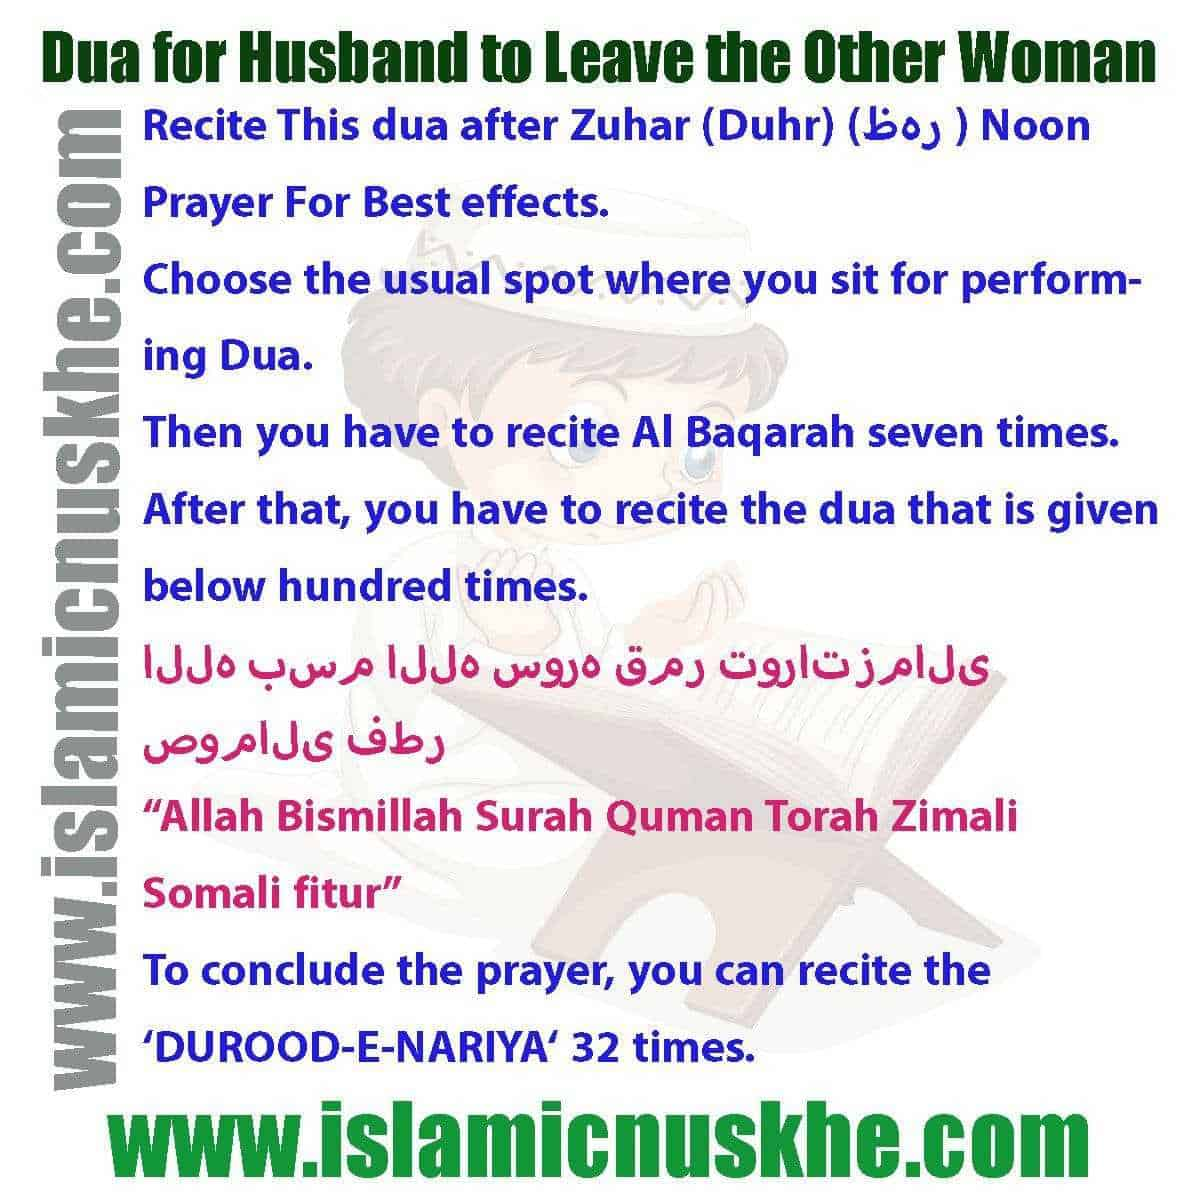 Here is Dua for Husband to Leave the Other Woman Step by Step -